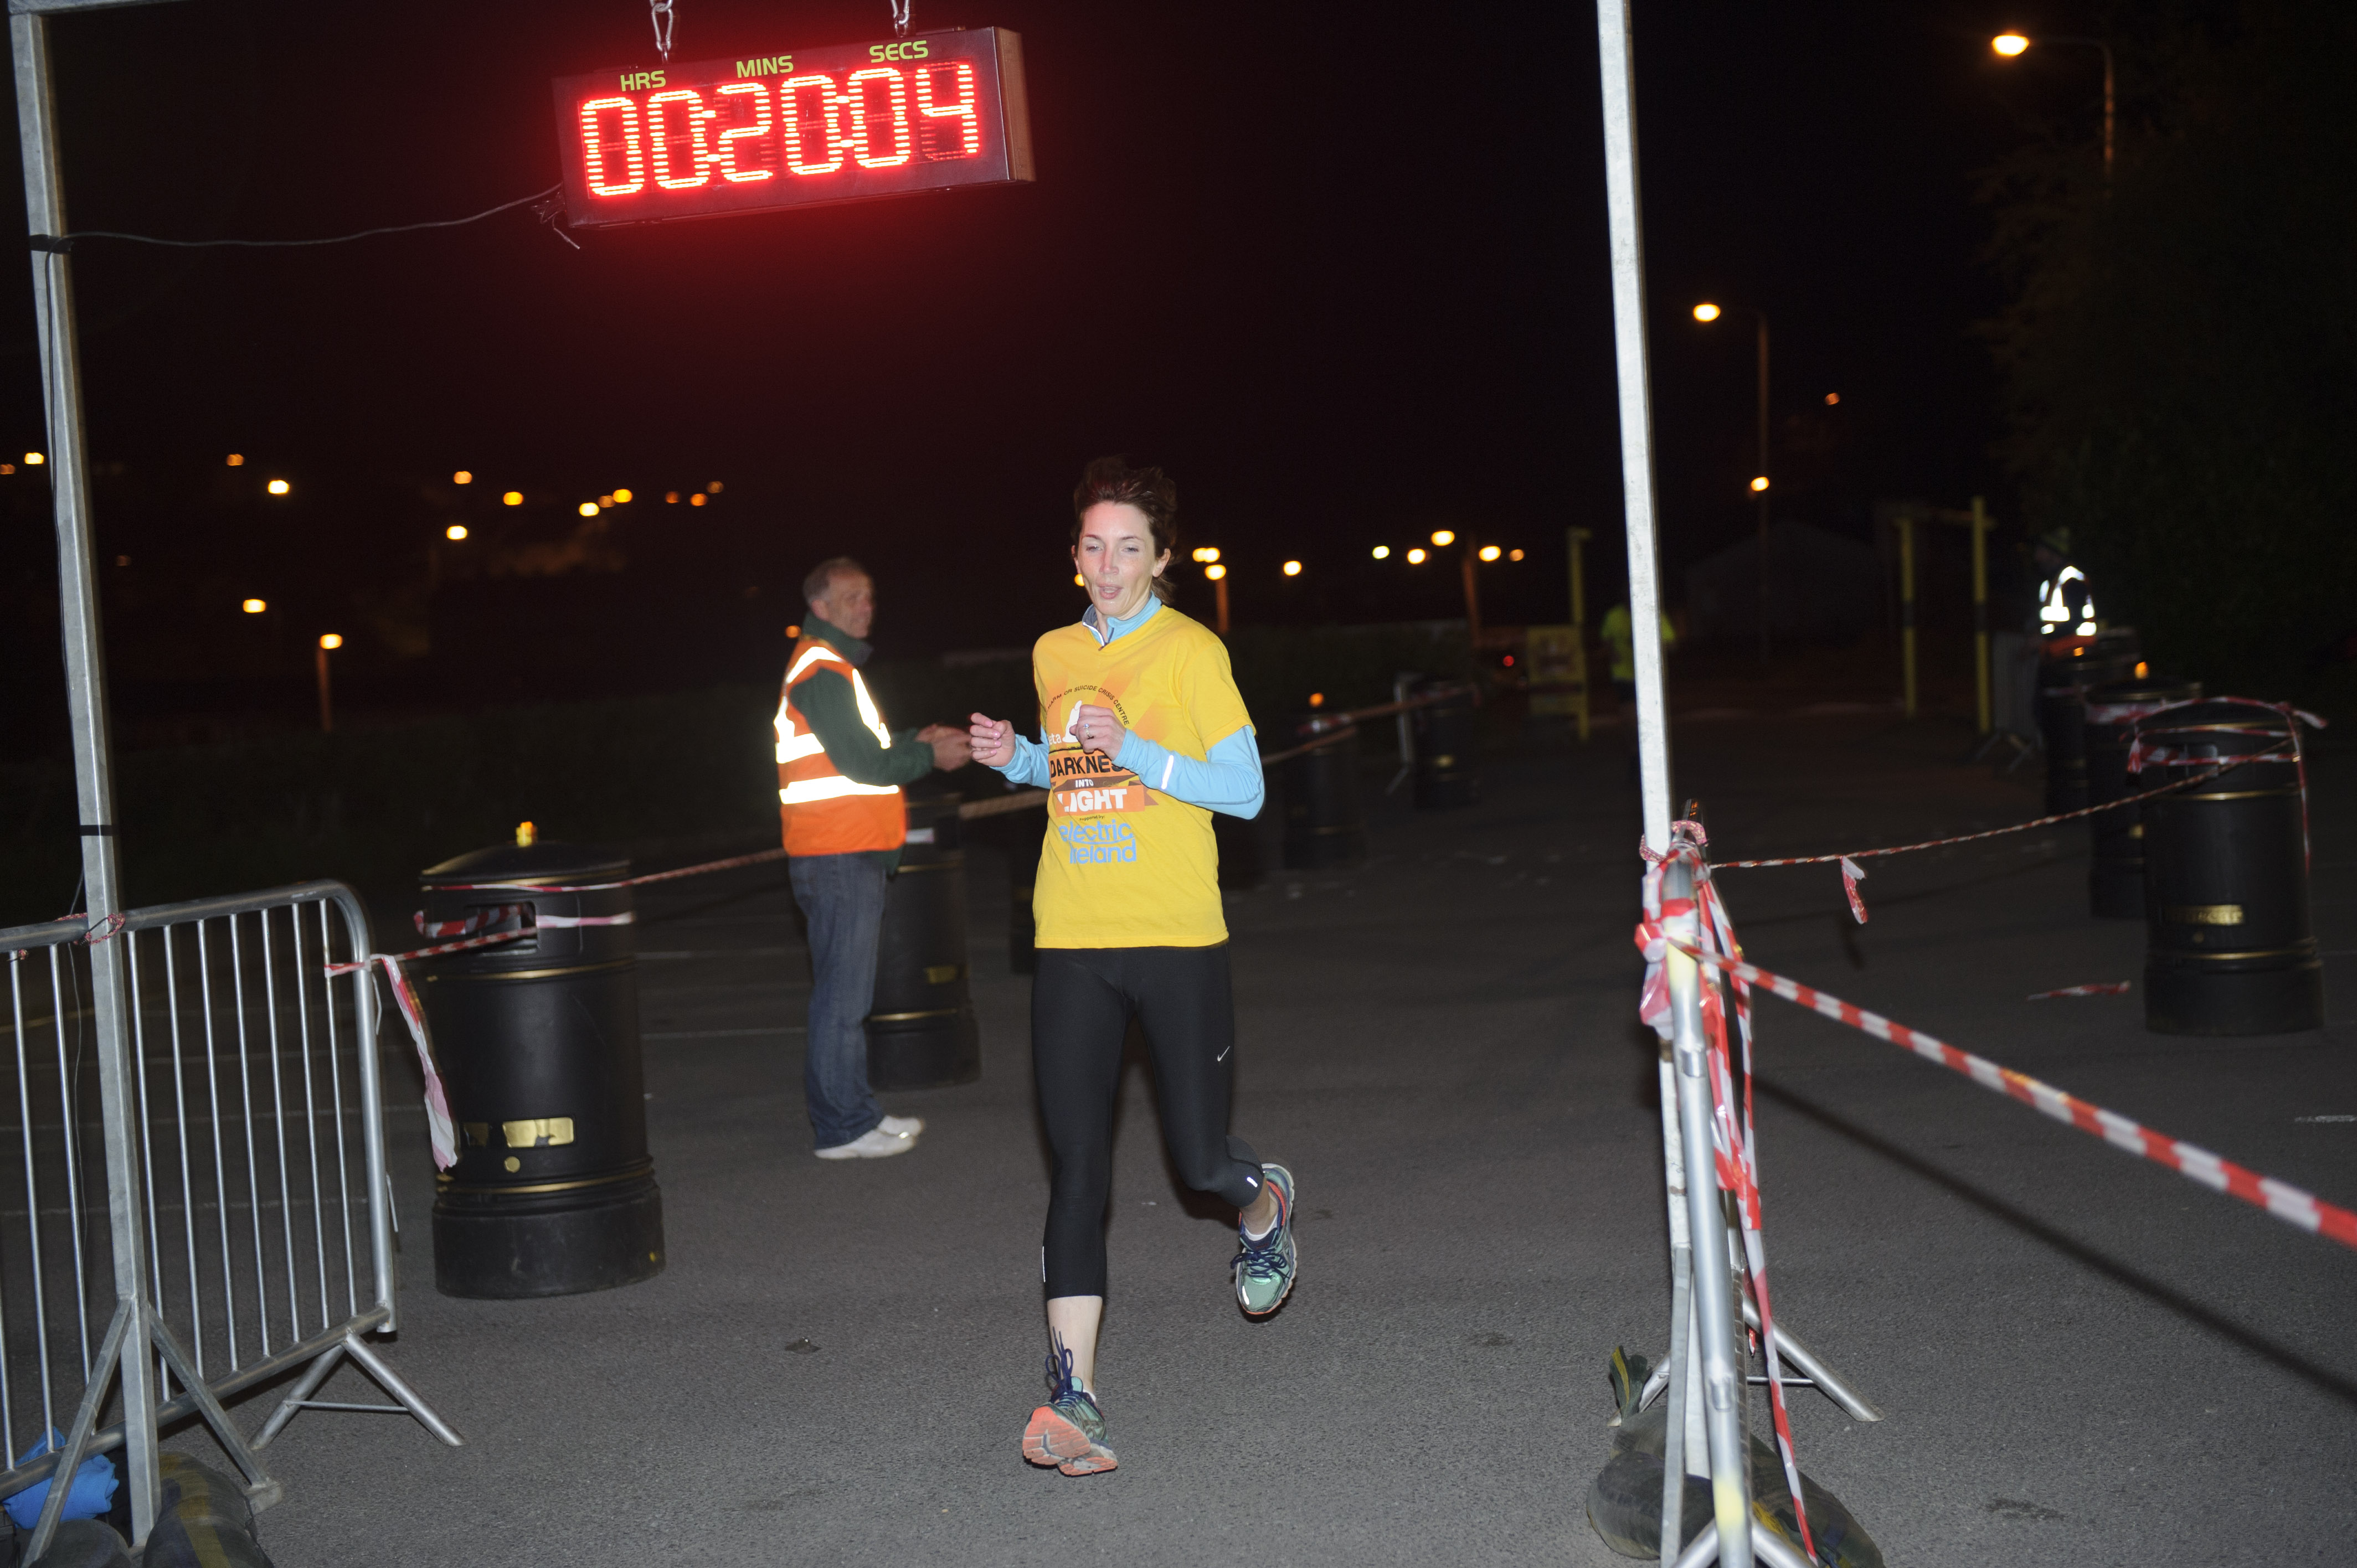 Donna Moen, who was the first lady to finish the Darkness Into Light 5 in Monaghan. ©Rory Geary/The Northern Standard